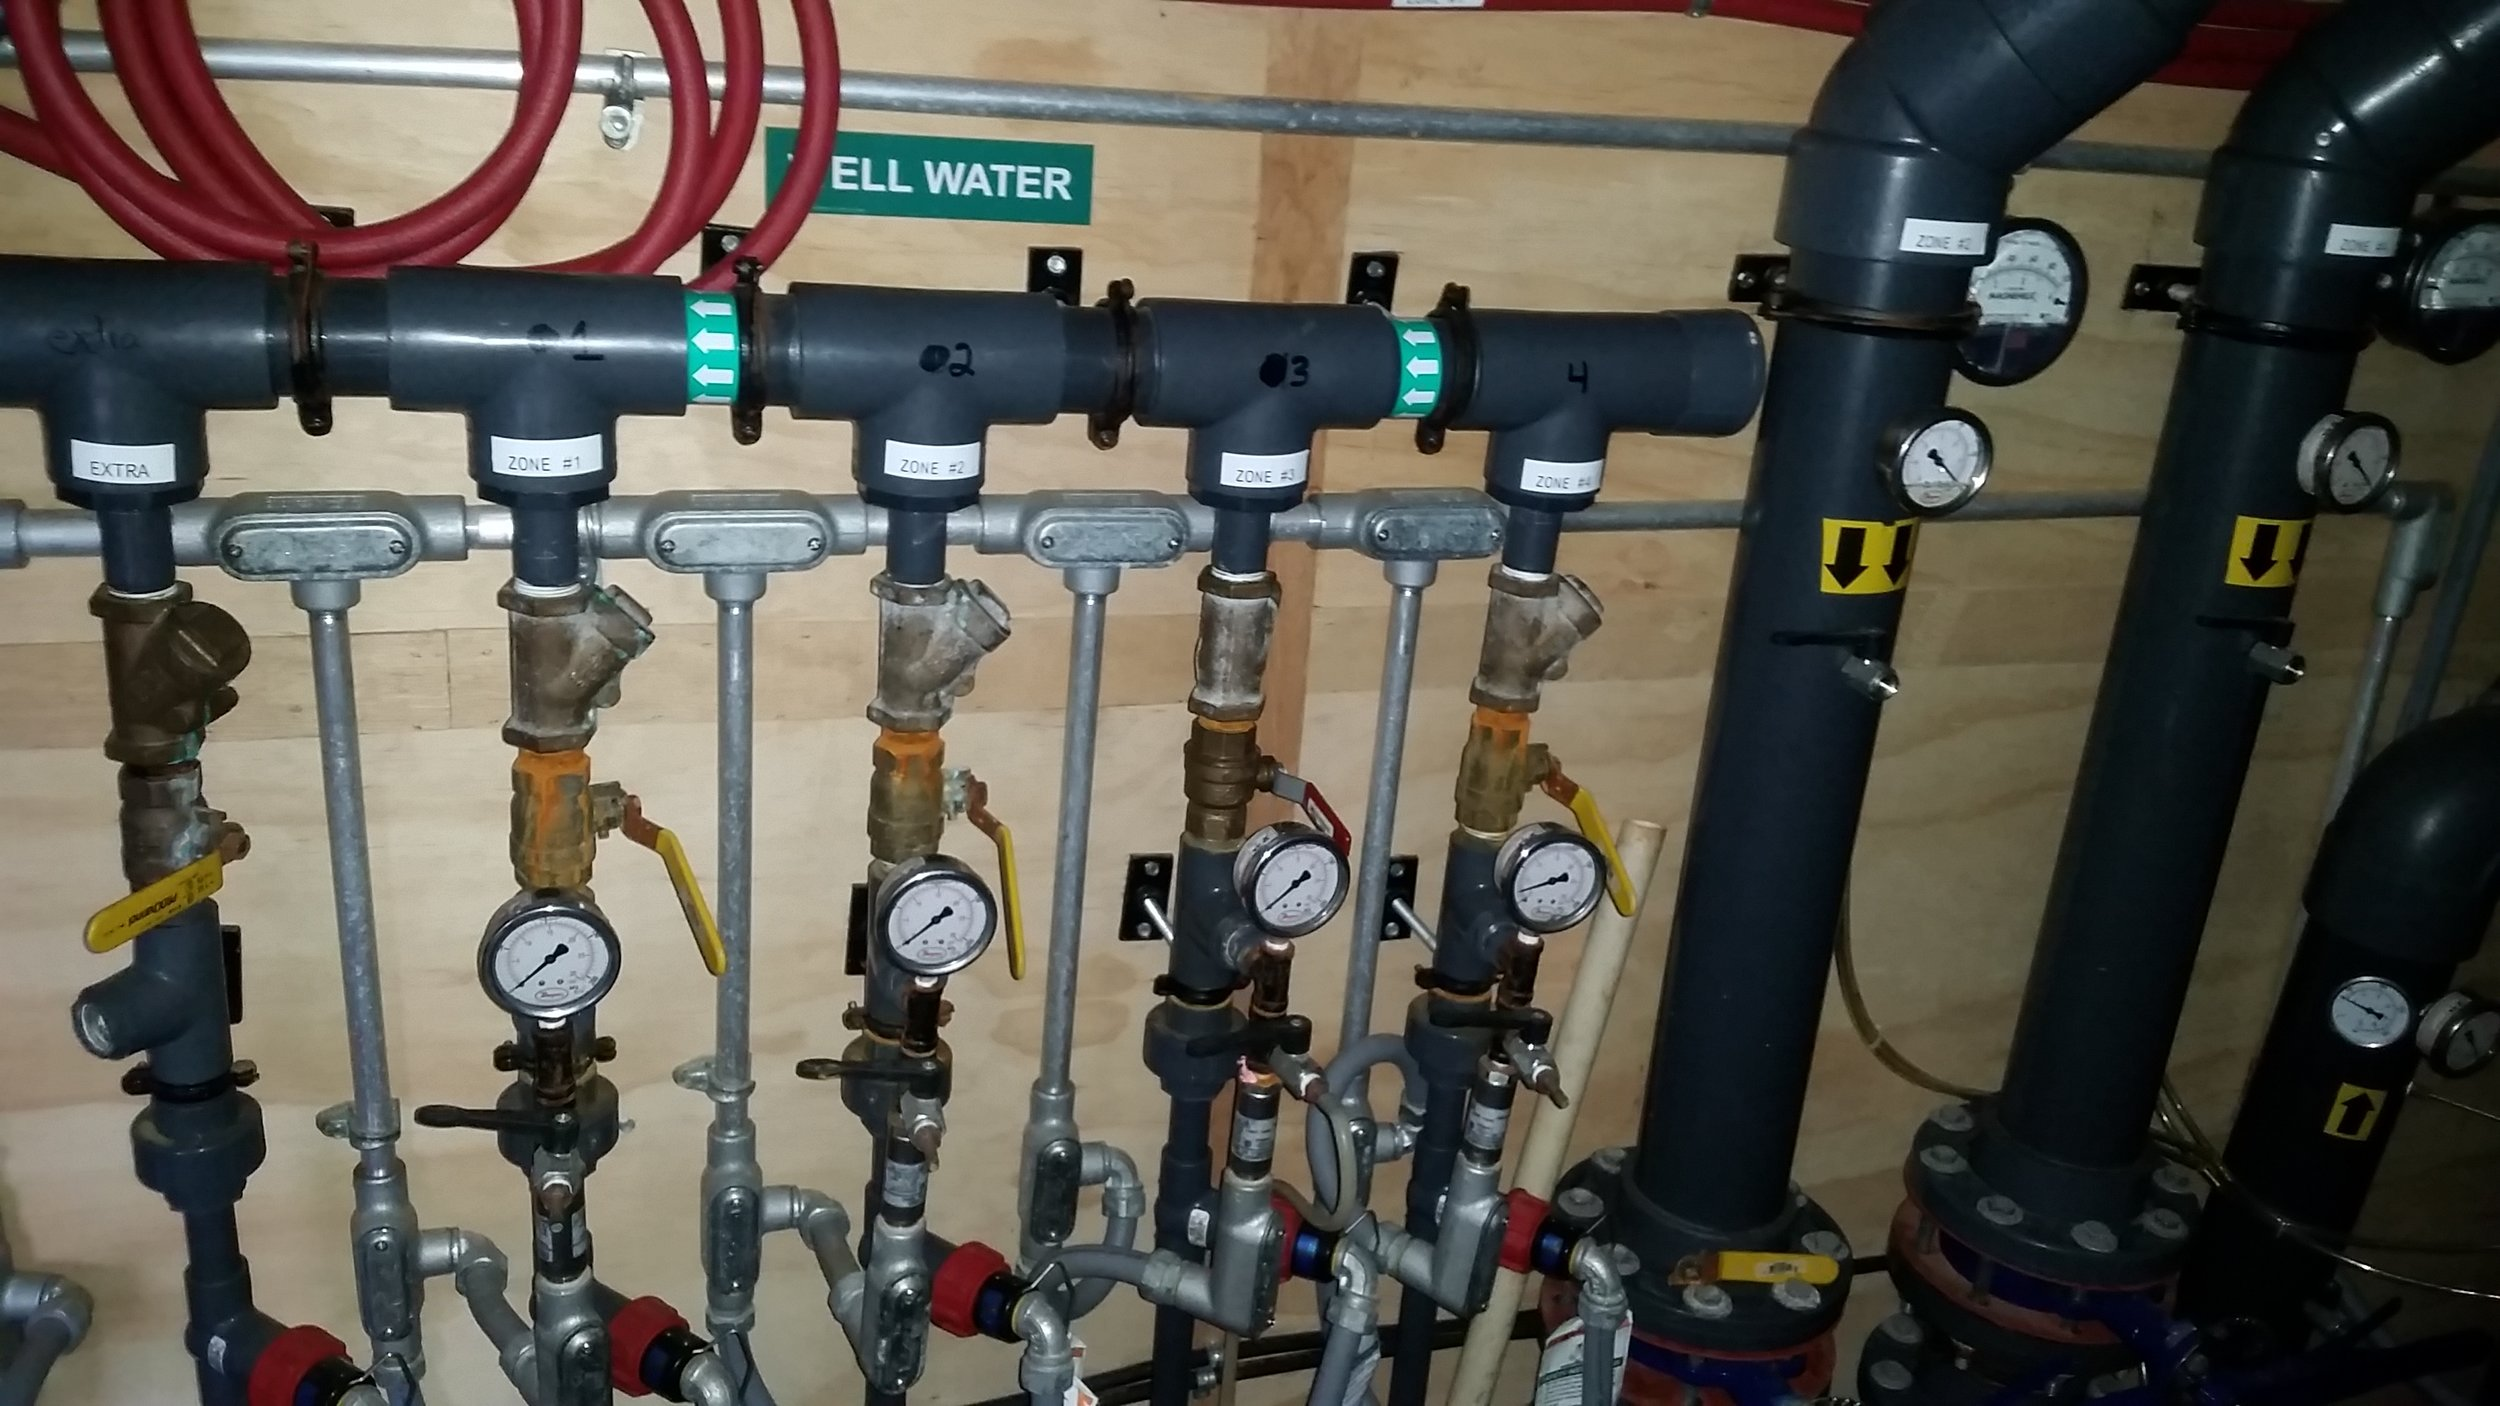 Valves and piping in place as part of the multi-phase extraction system used for remediation at the site.